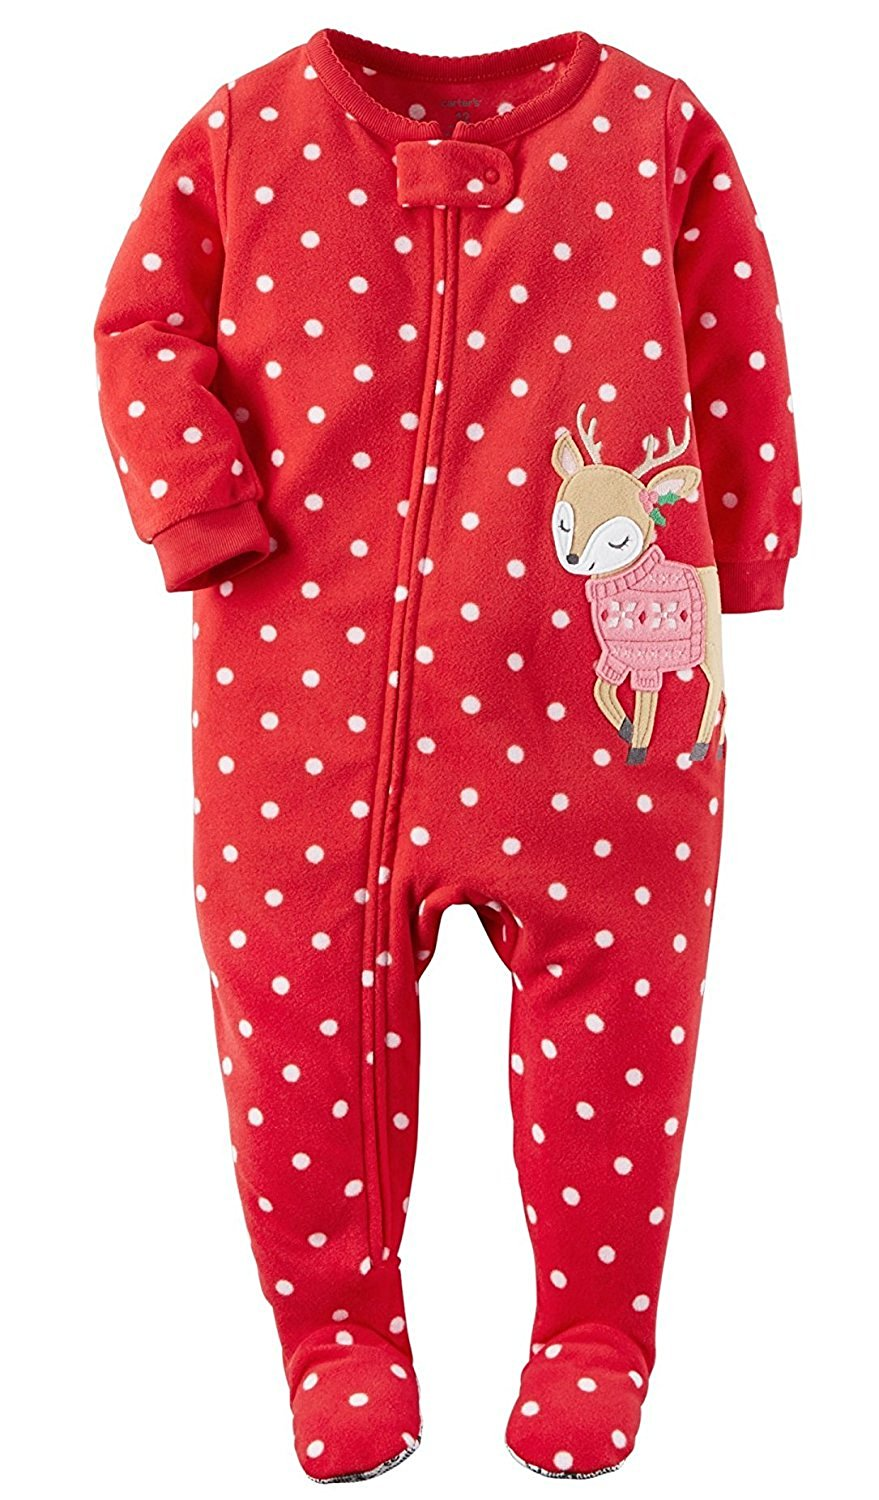 Shop for fleece footed pajamas baby online at Target. Free shipping on purchases over $35 and save 5% every day with your Target REDcard.